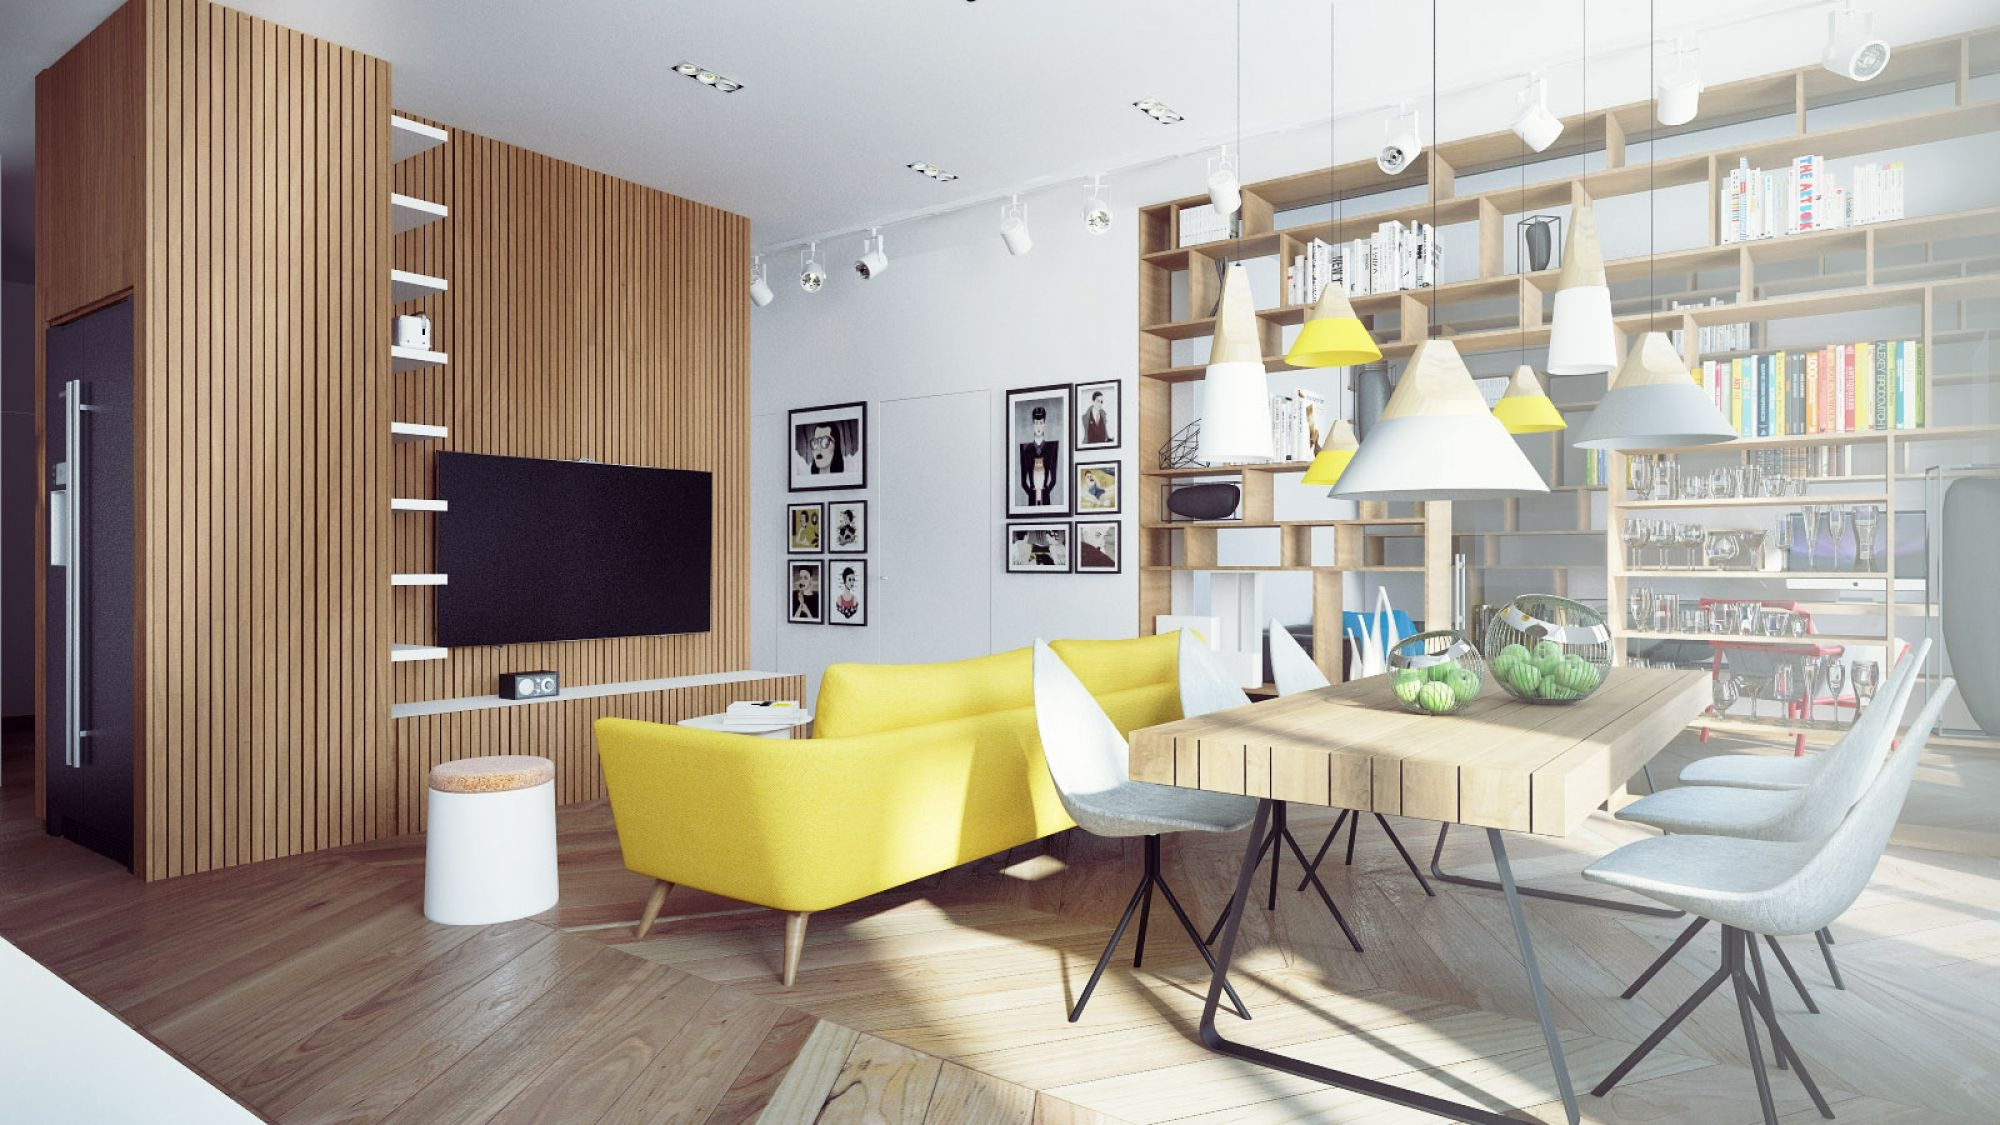 A number of dining designs present